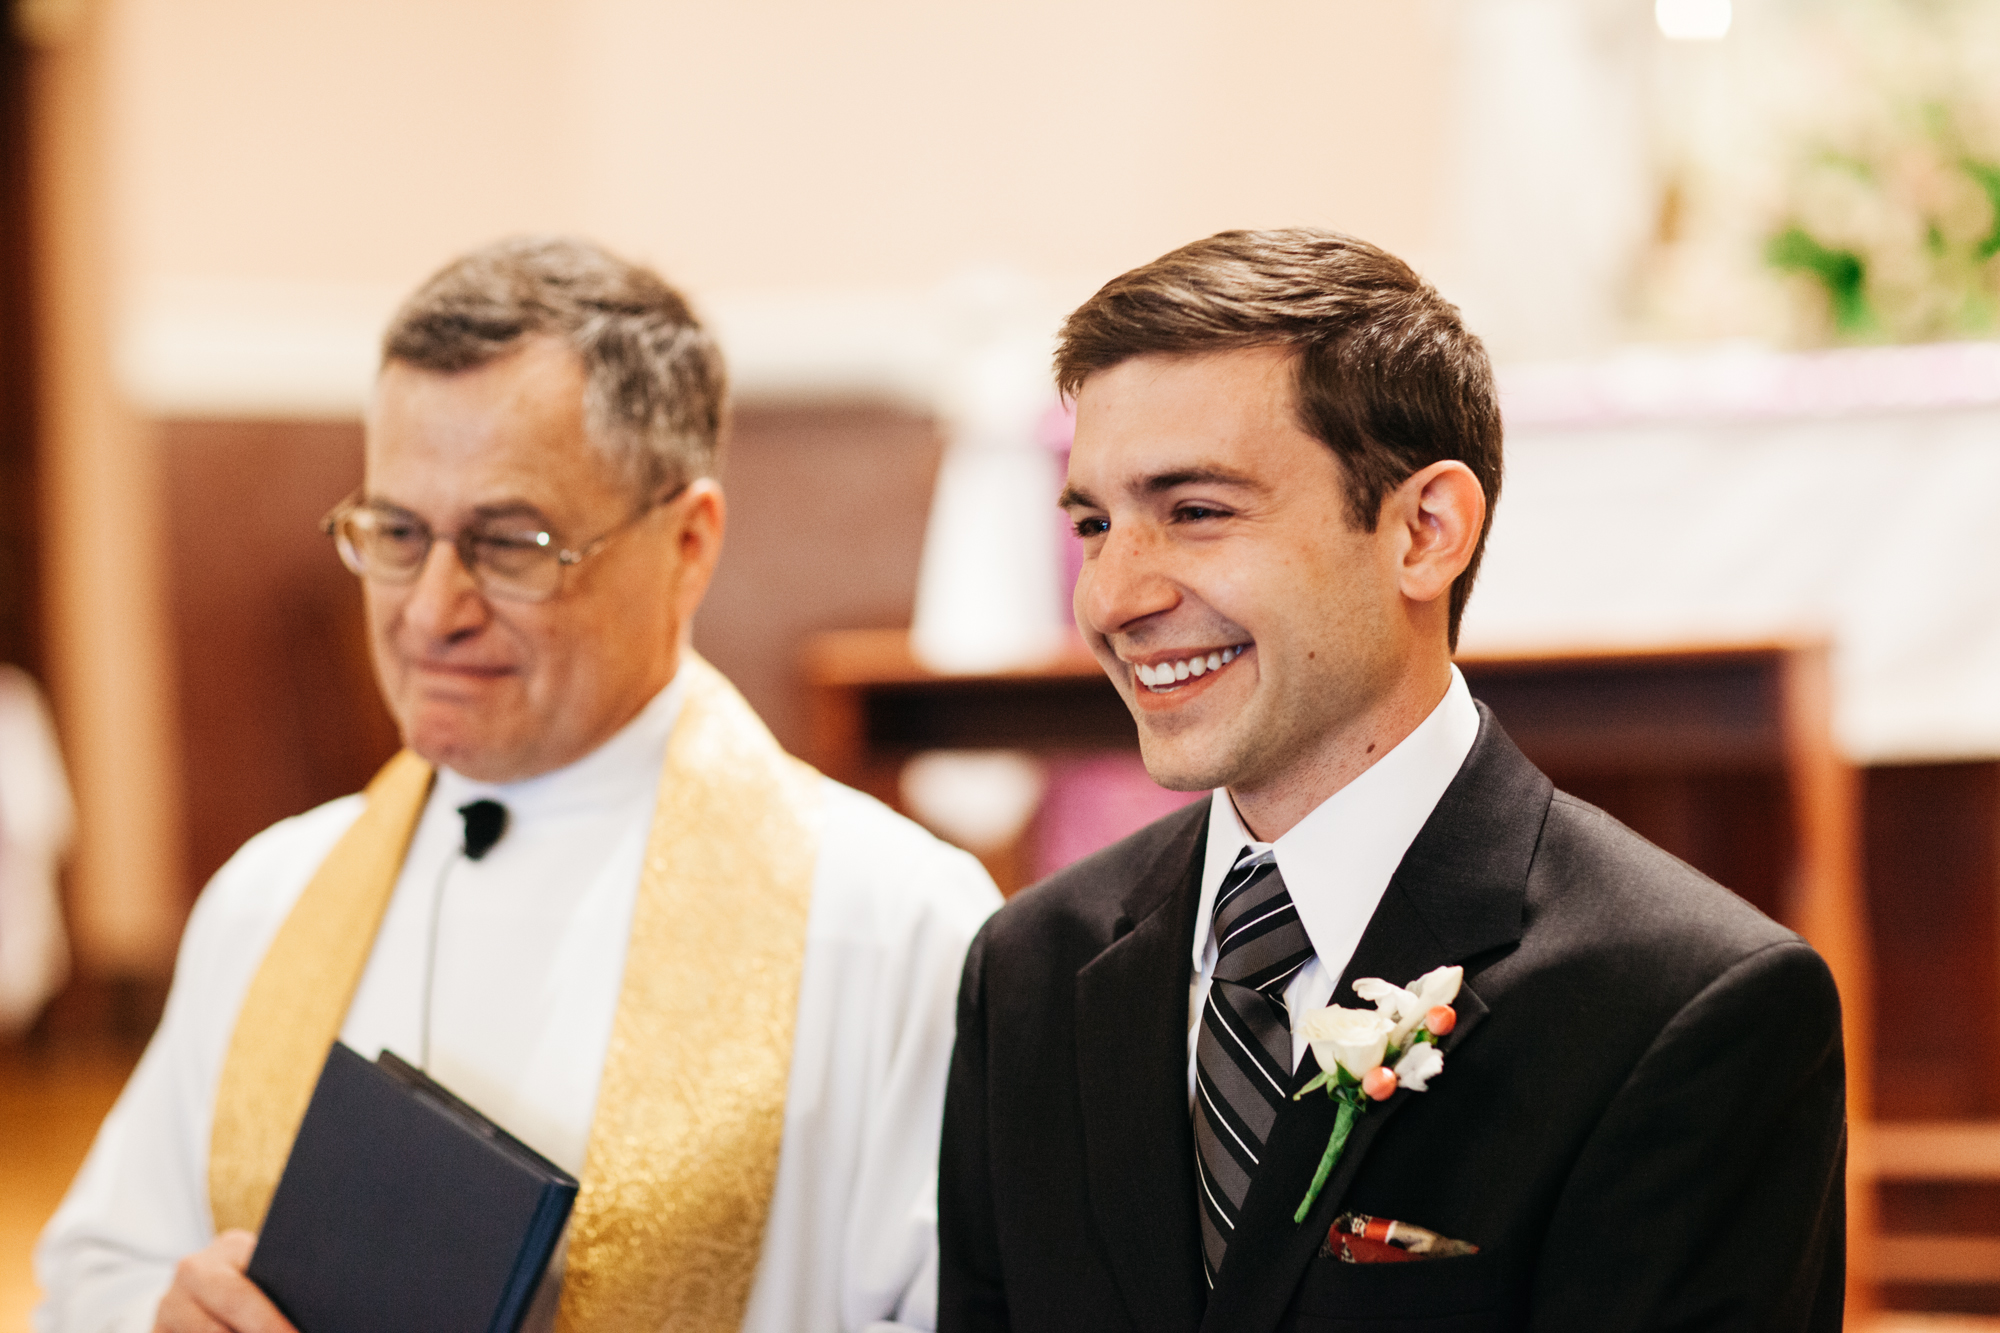 Kevin + Caitlin's Wedding Day